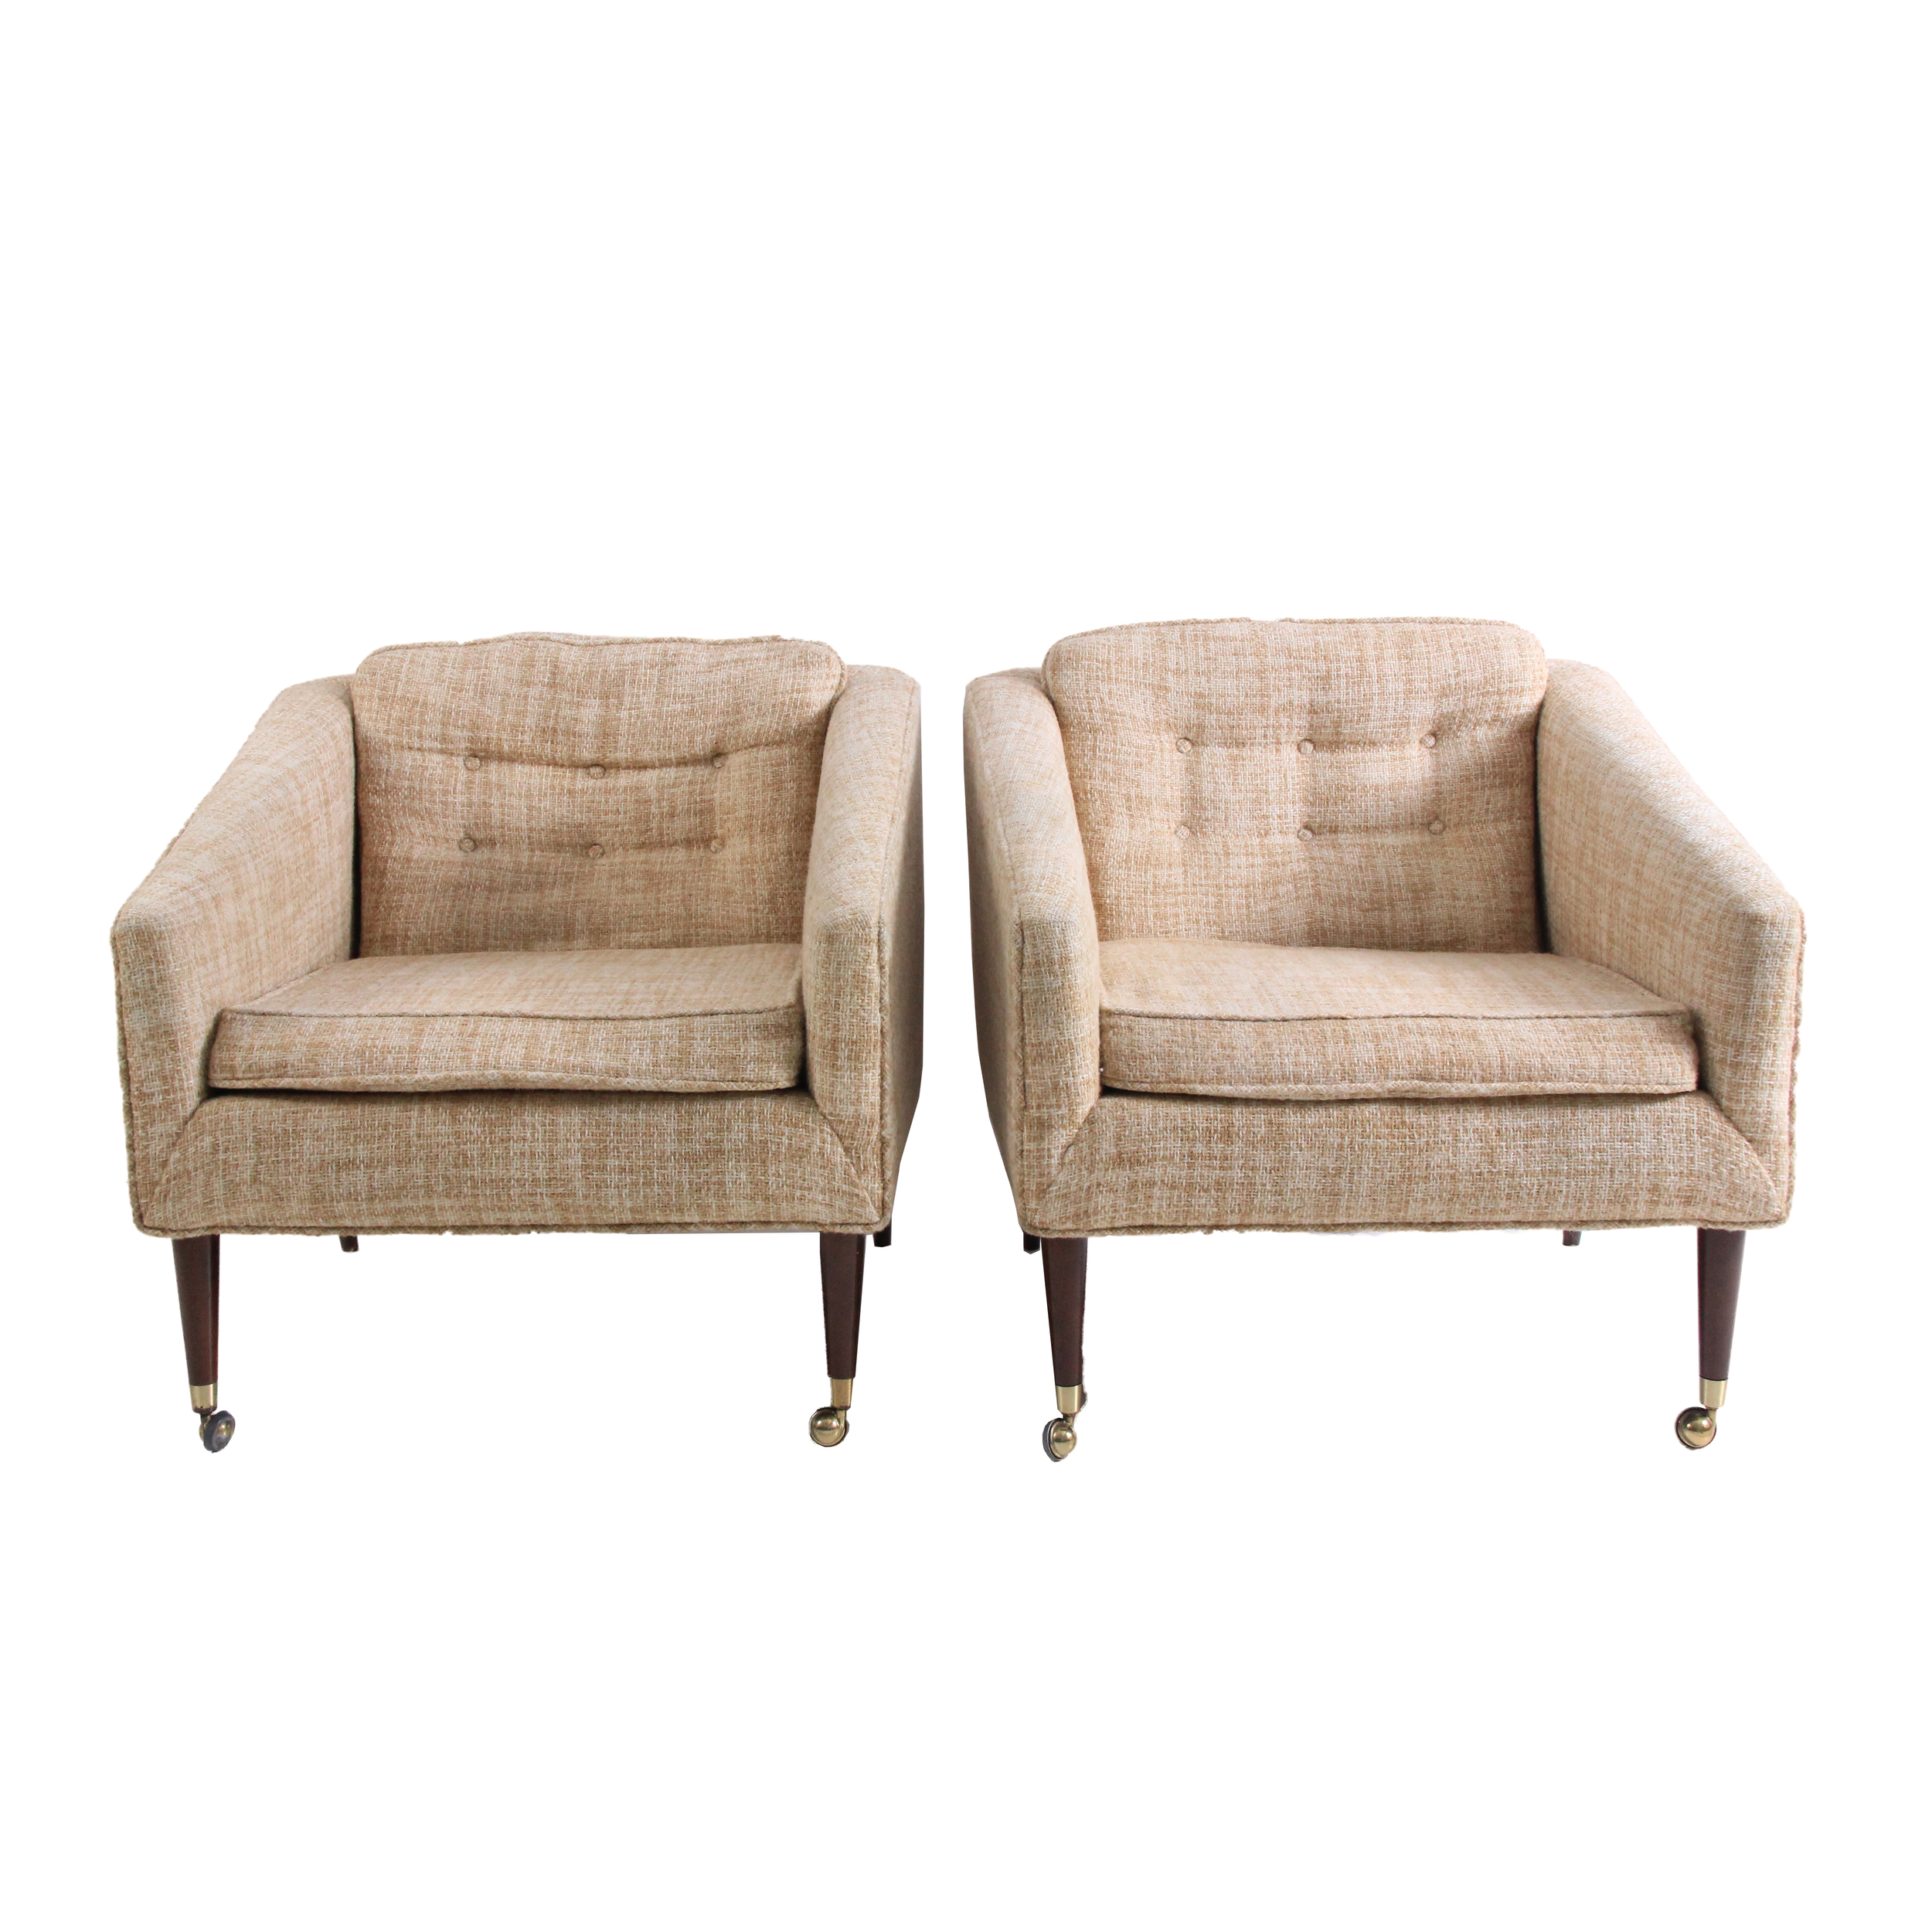 loveseat bamboo fletcher in bespoke sofa preview alexandra furniture flame sofas leonora beaumont luxury product seater